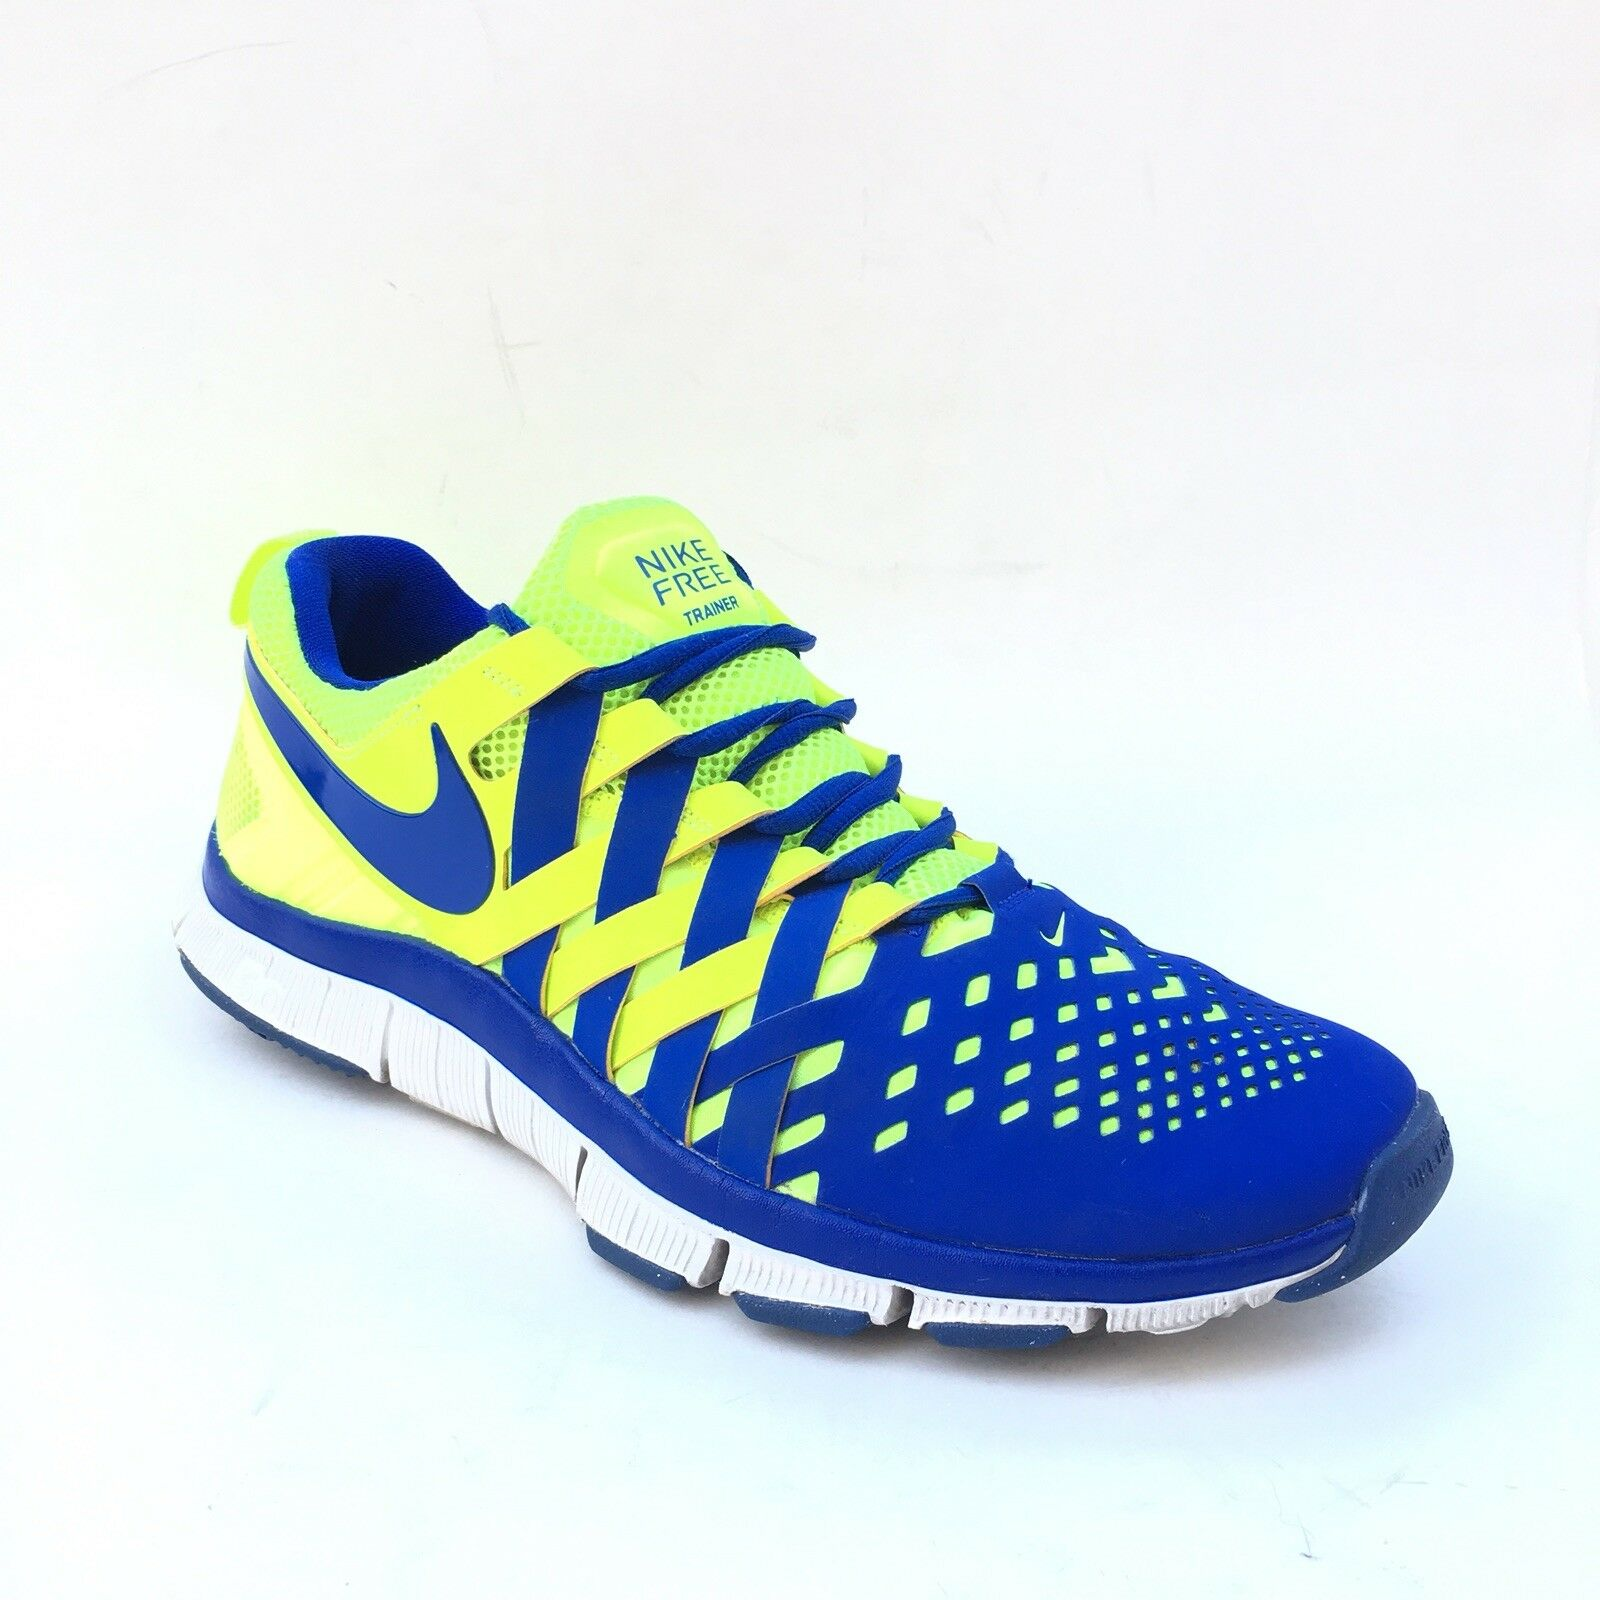 best sneakers 56344 eb194 Nike Free Mens Running Shoes Size 11 11 11 Blue Nike Trainer 5.0 Sneakers  5e38b1